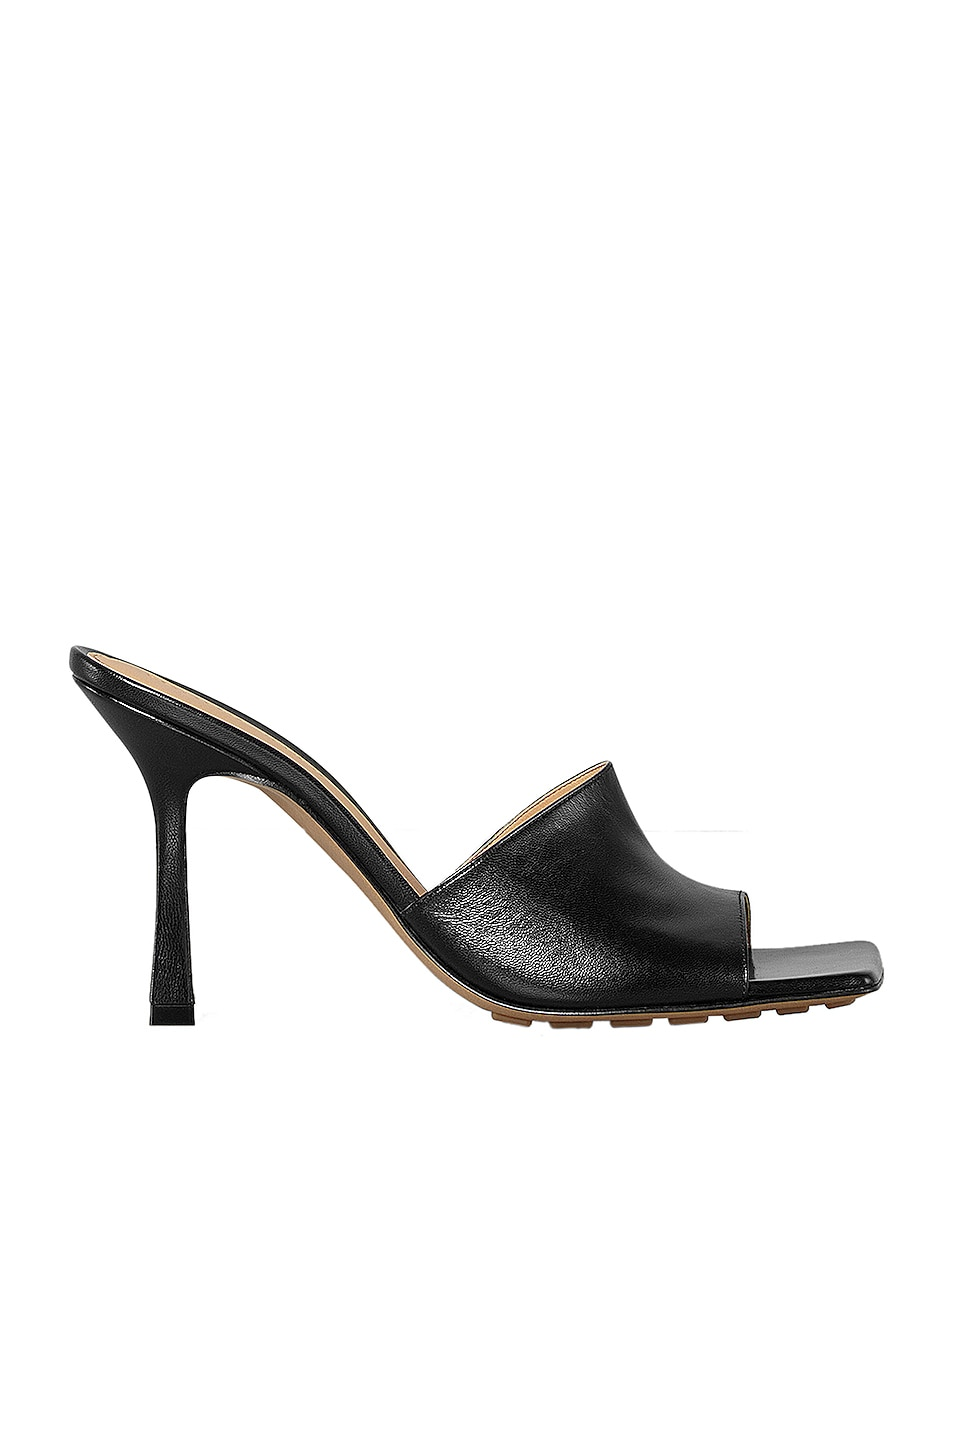 Image 1 of Bottega Veneta Stretch Mules in Black